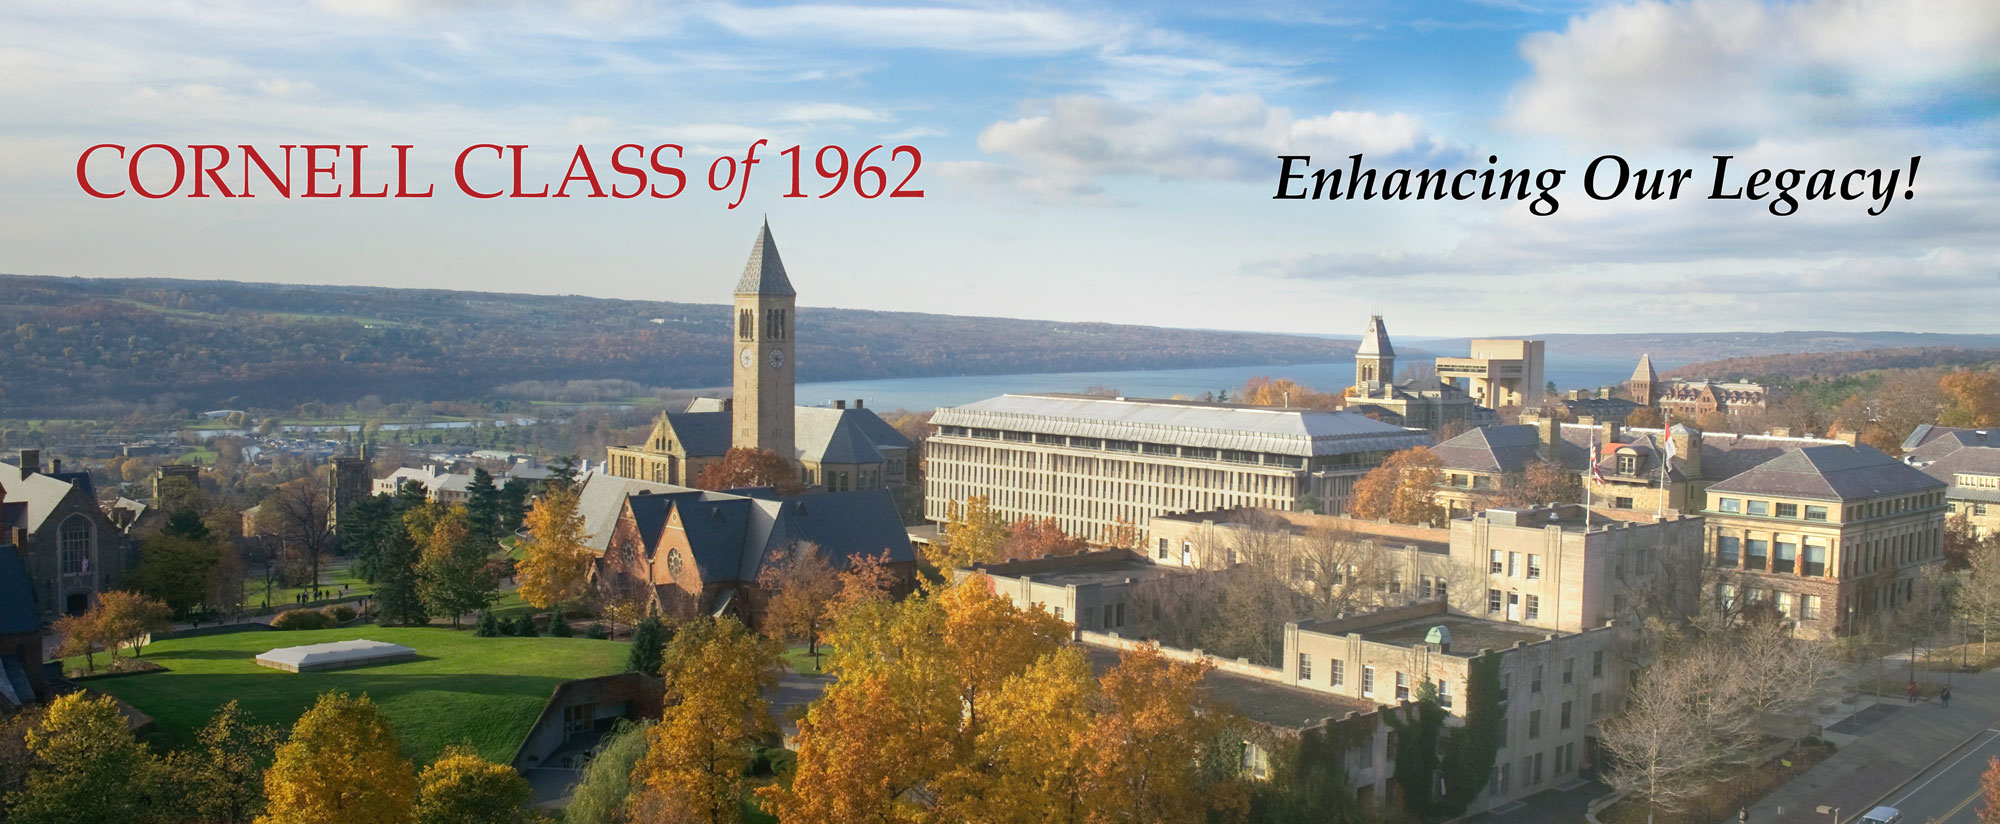 Cornell Campus overview with Cayuga Lake in the background